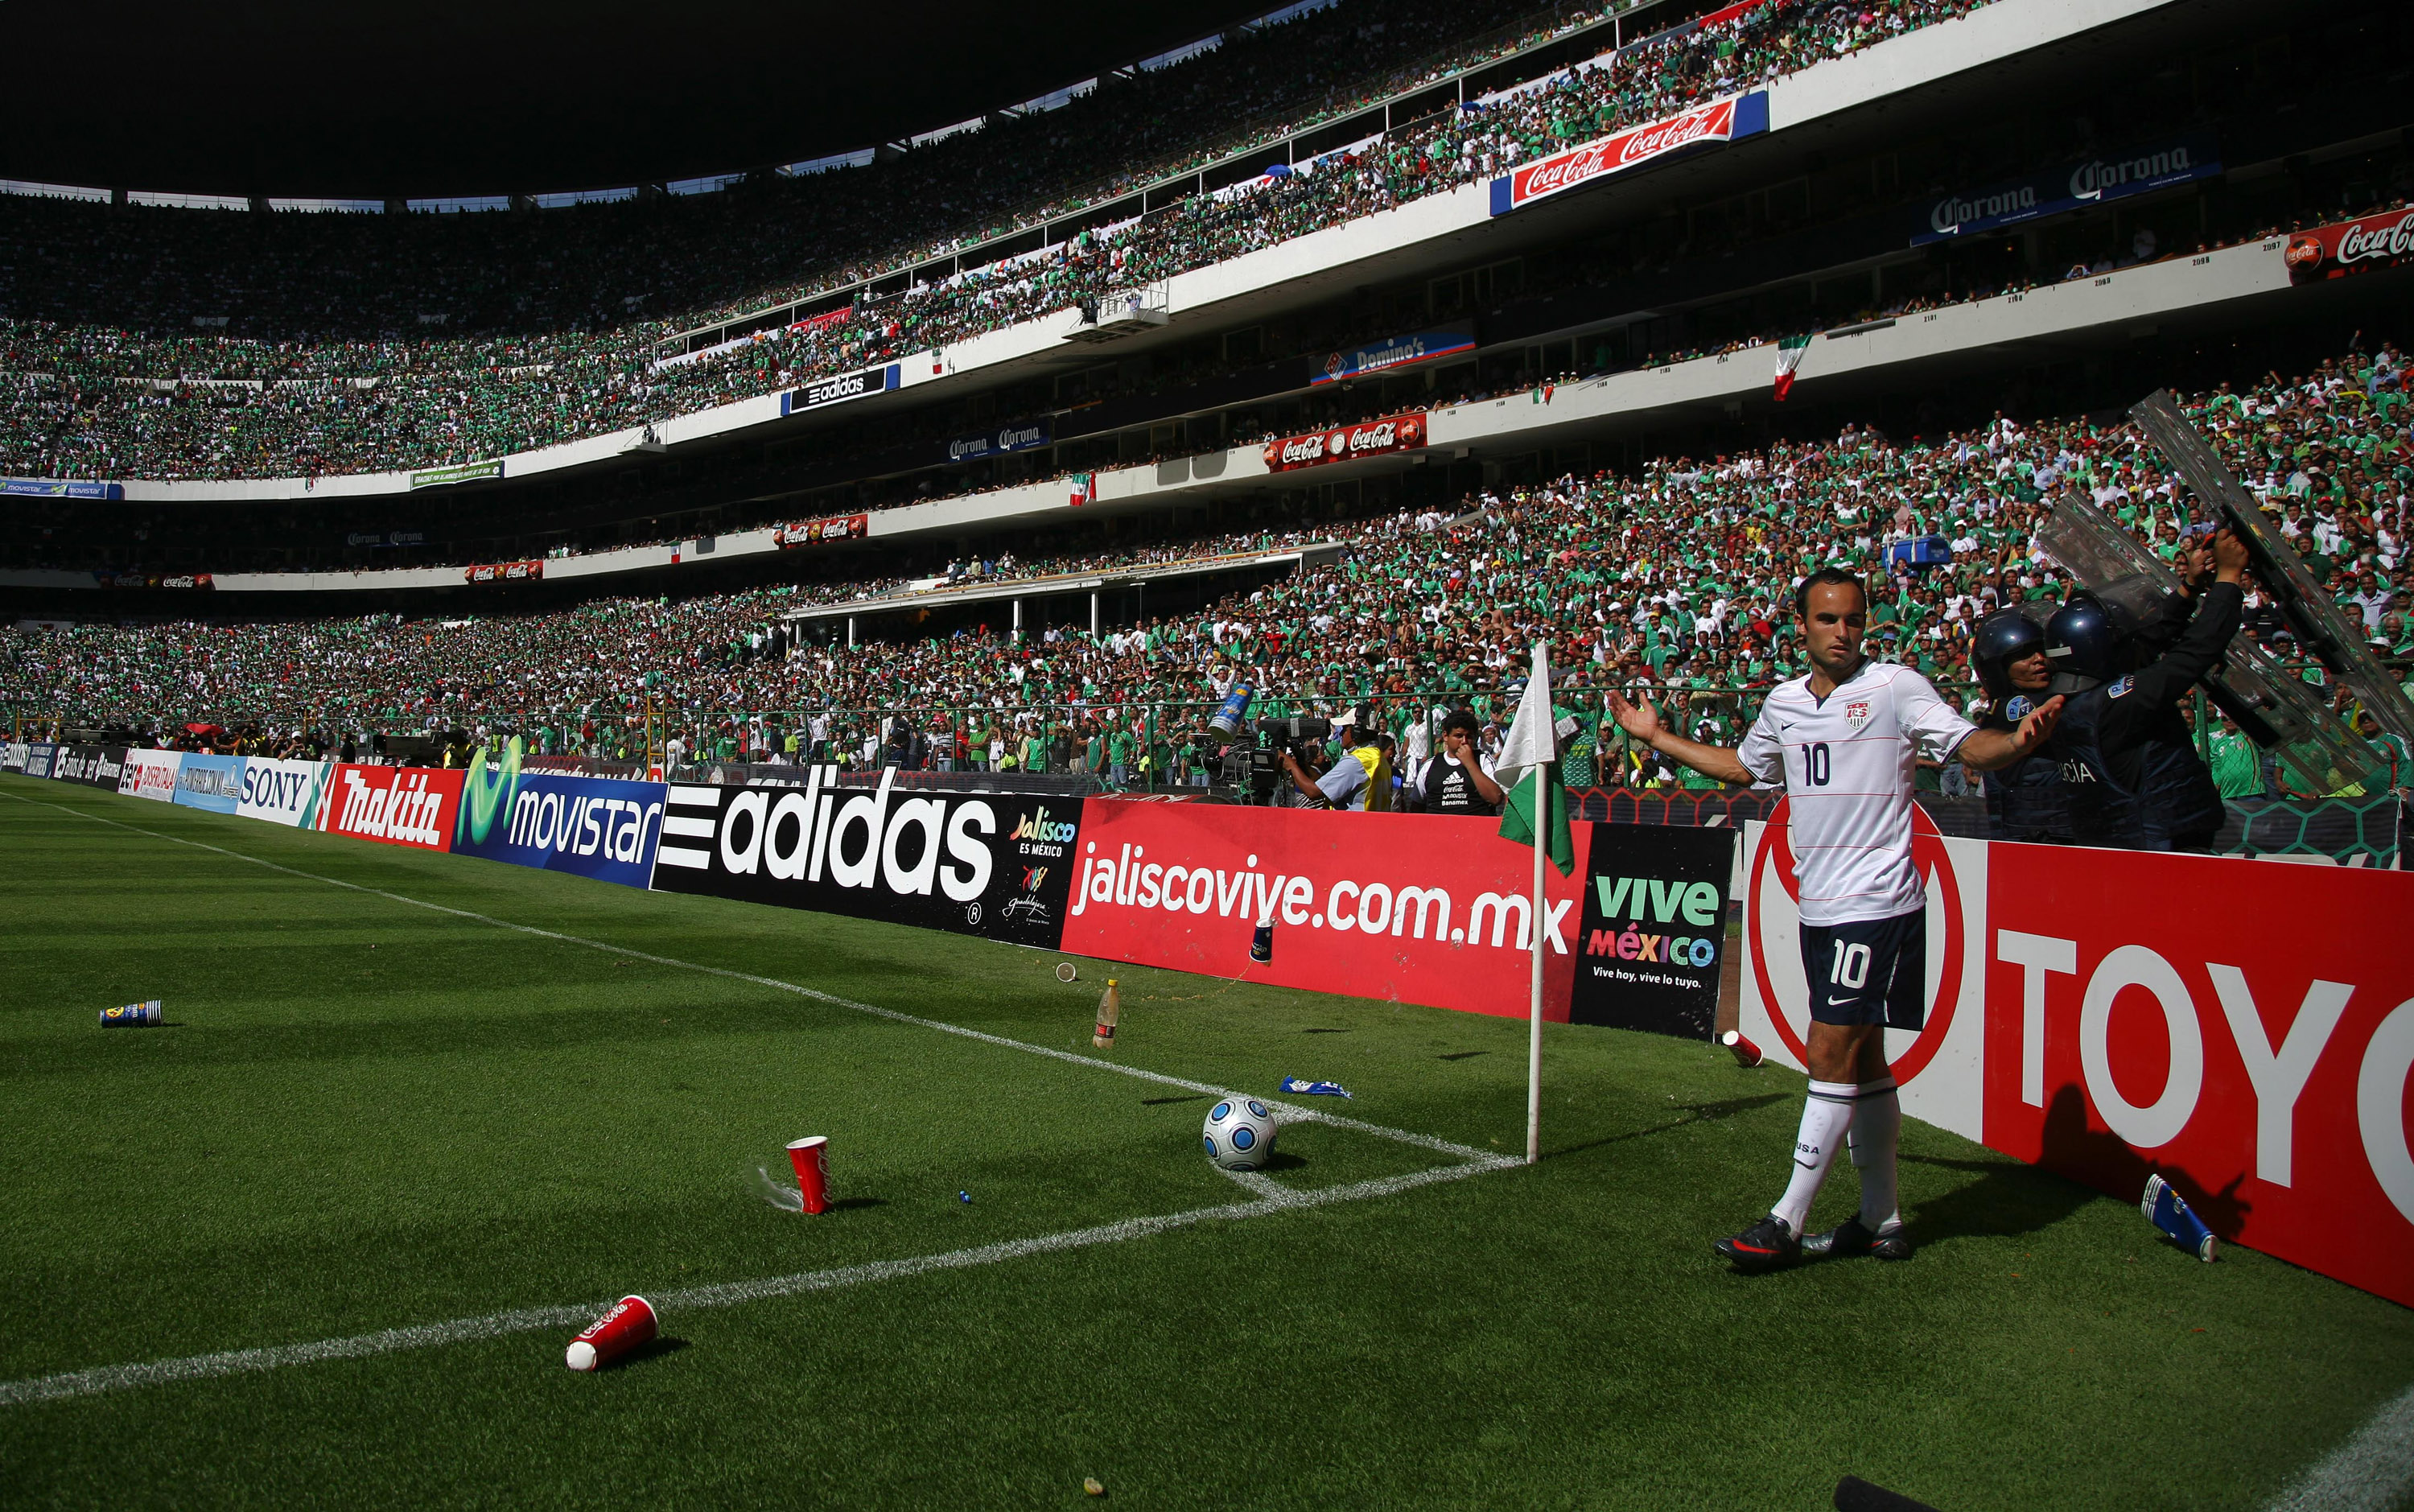 Landon Donovan has trash thrown on him at Azteco Stadium in 2009. (Getty Images)